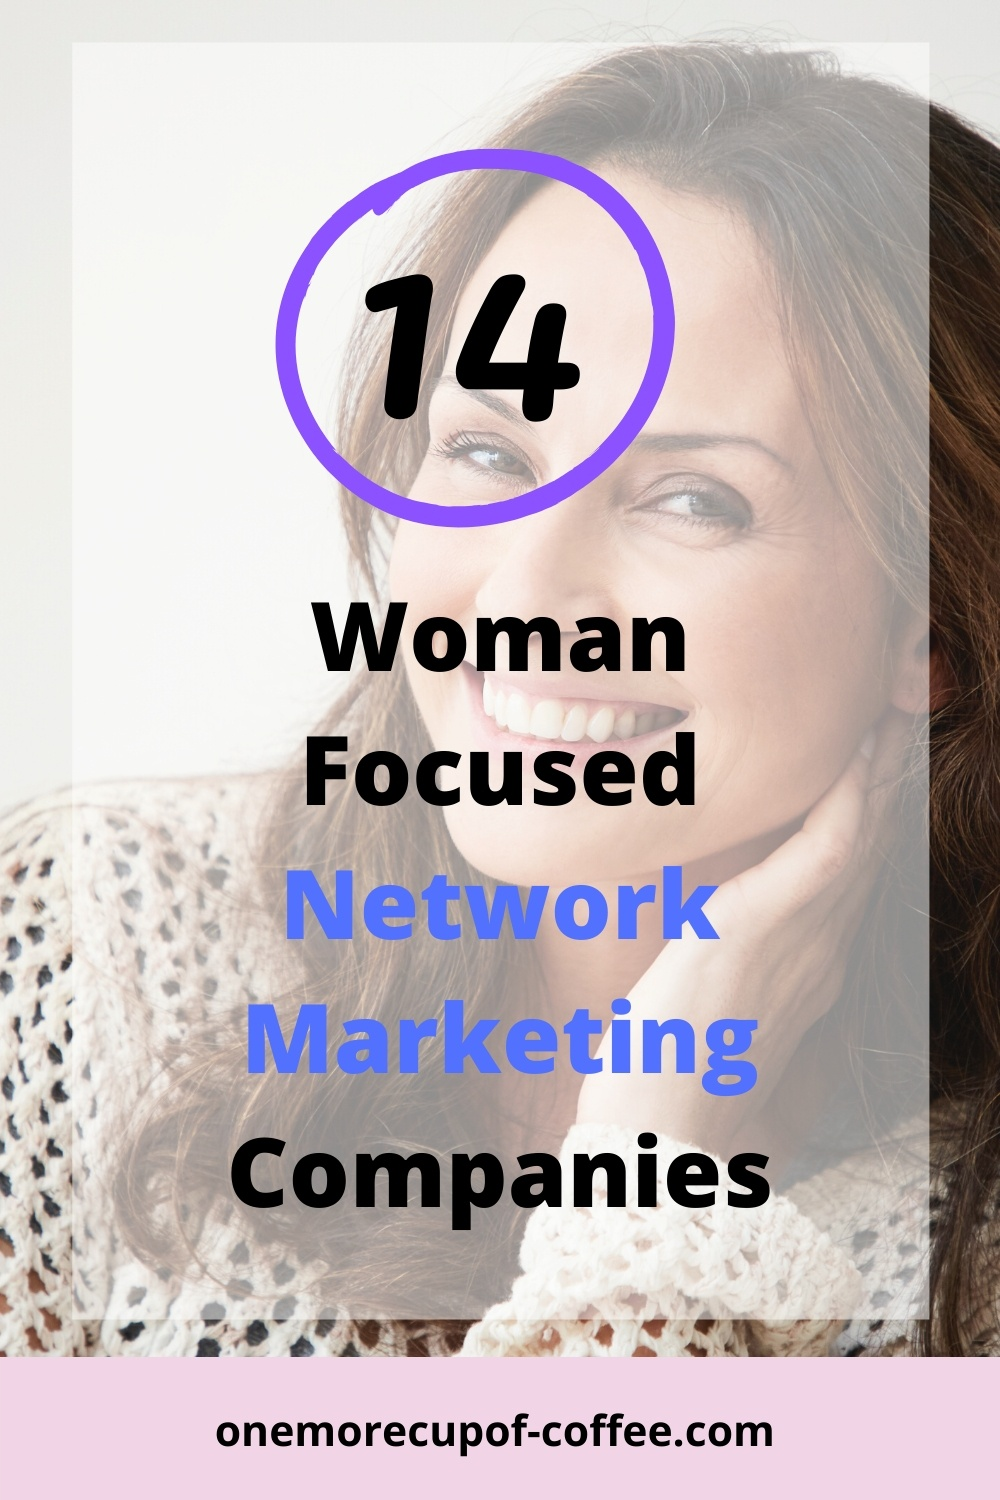 Woman smiling at the camera to represent woman focused network marketing companies